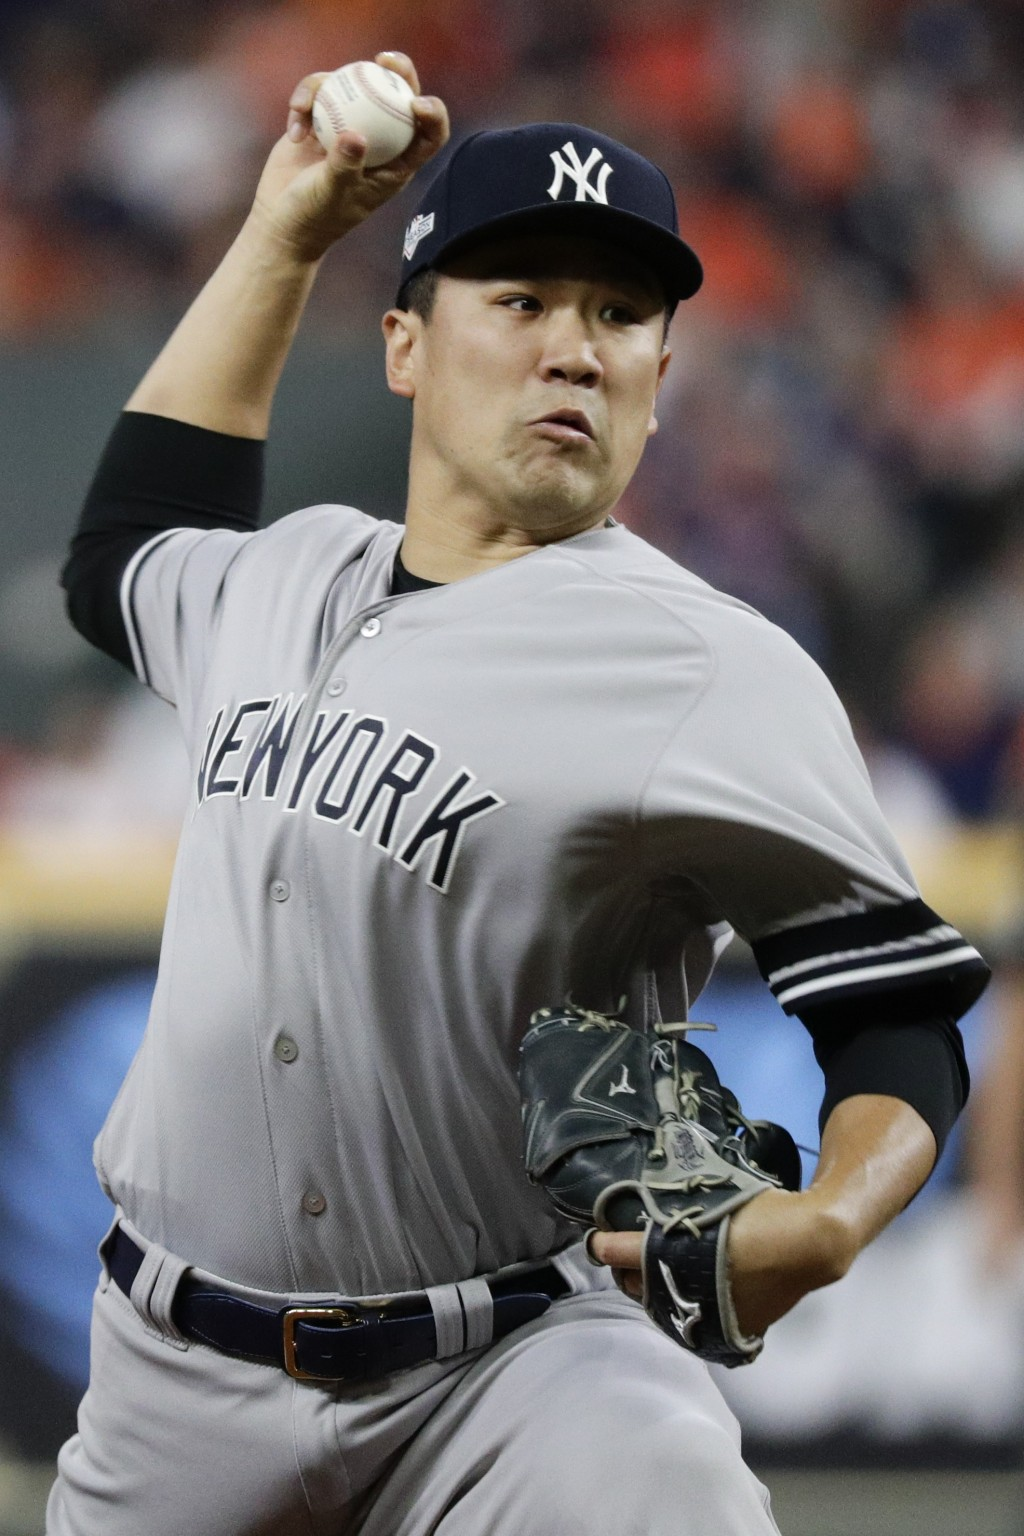 New York Yankees starting pitcher Masahiro Tanaka throws against the Houston Astros during the first inning in Game 1 of baseball's American League Ch